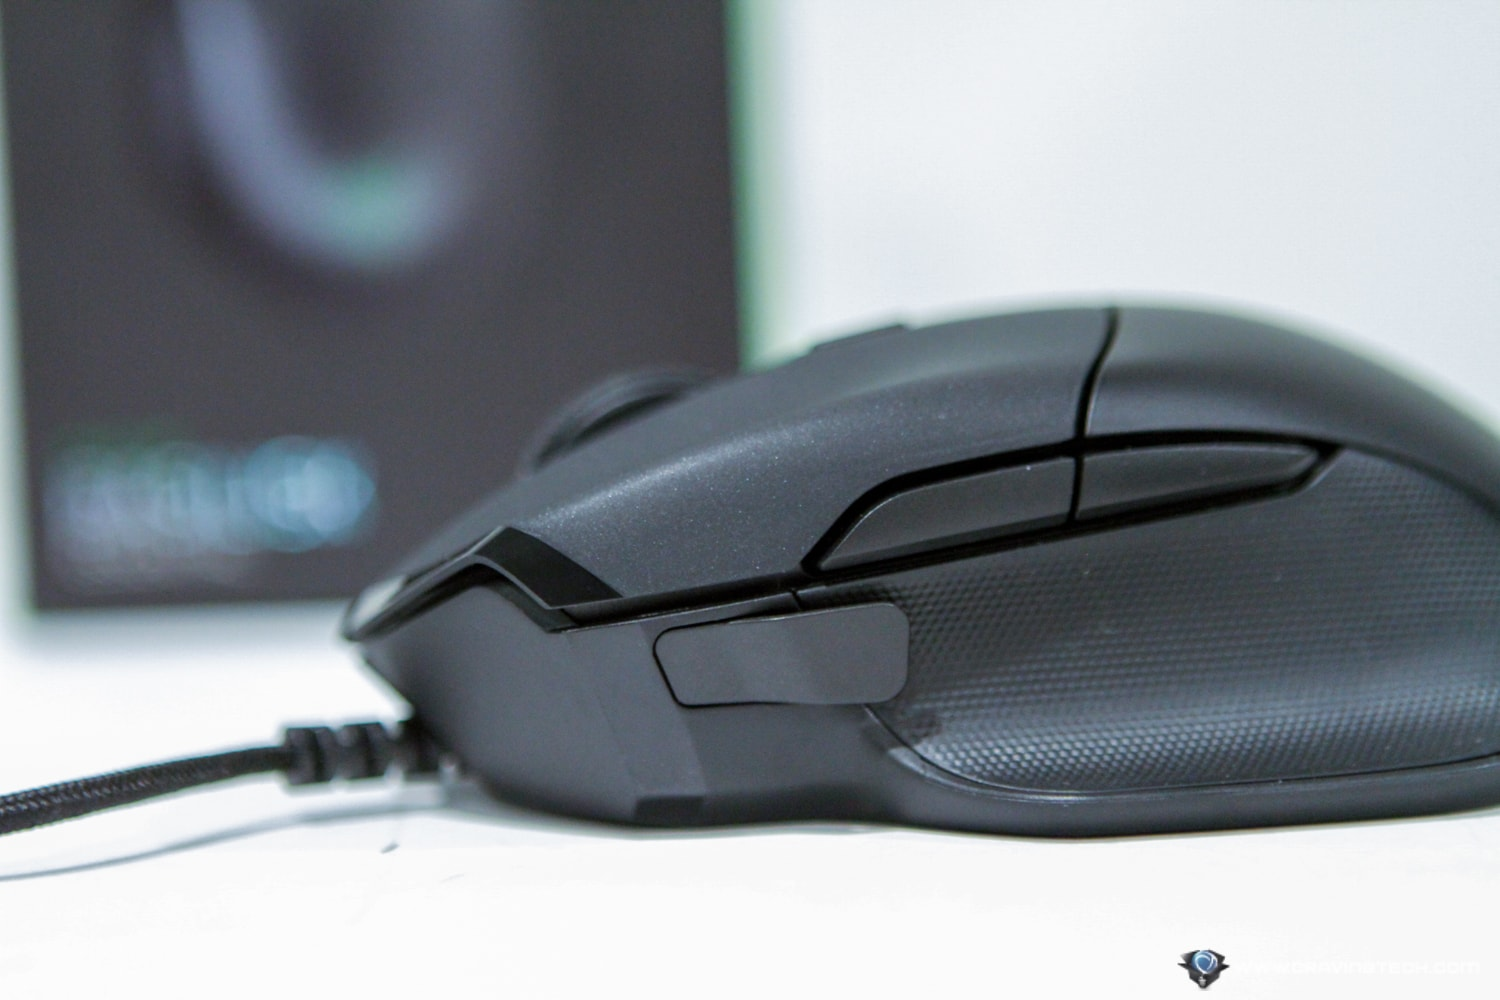 Razer Basilisk Essential paddle design